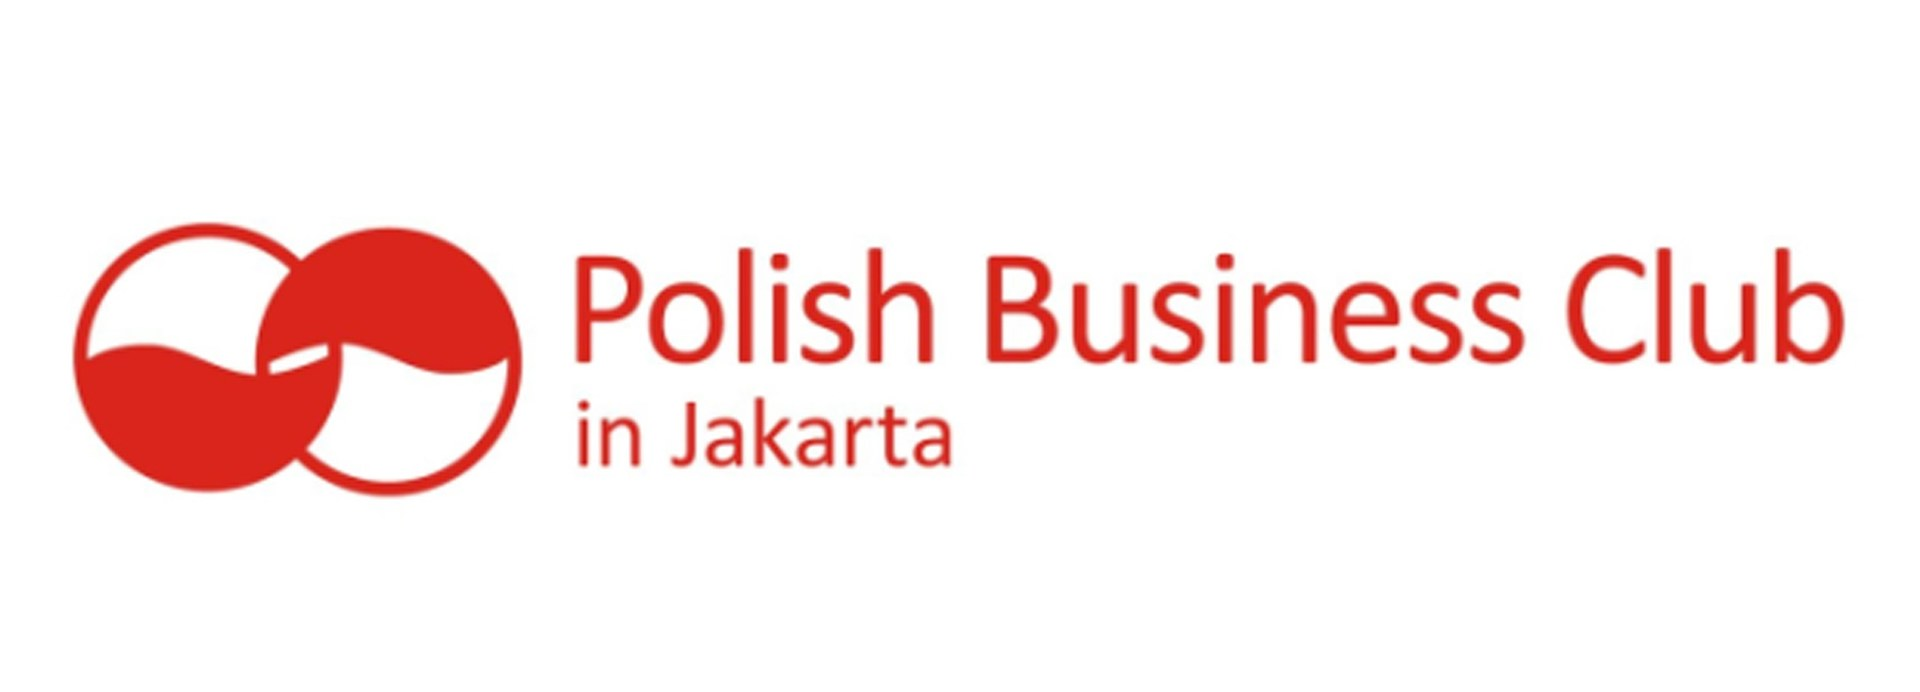 Polish Business club in Jakarta